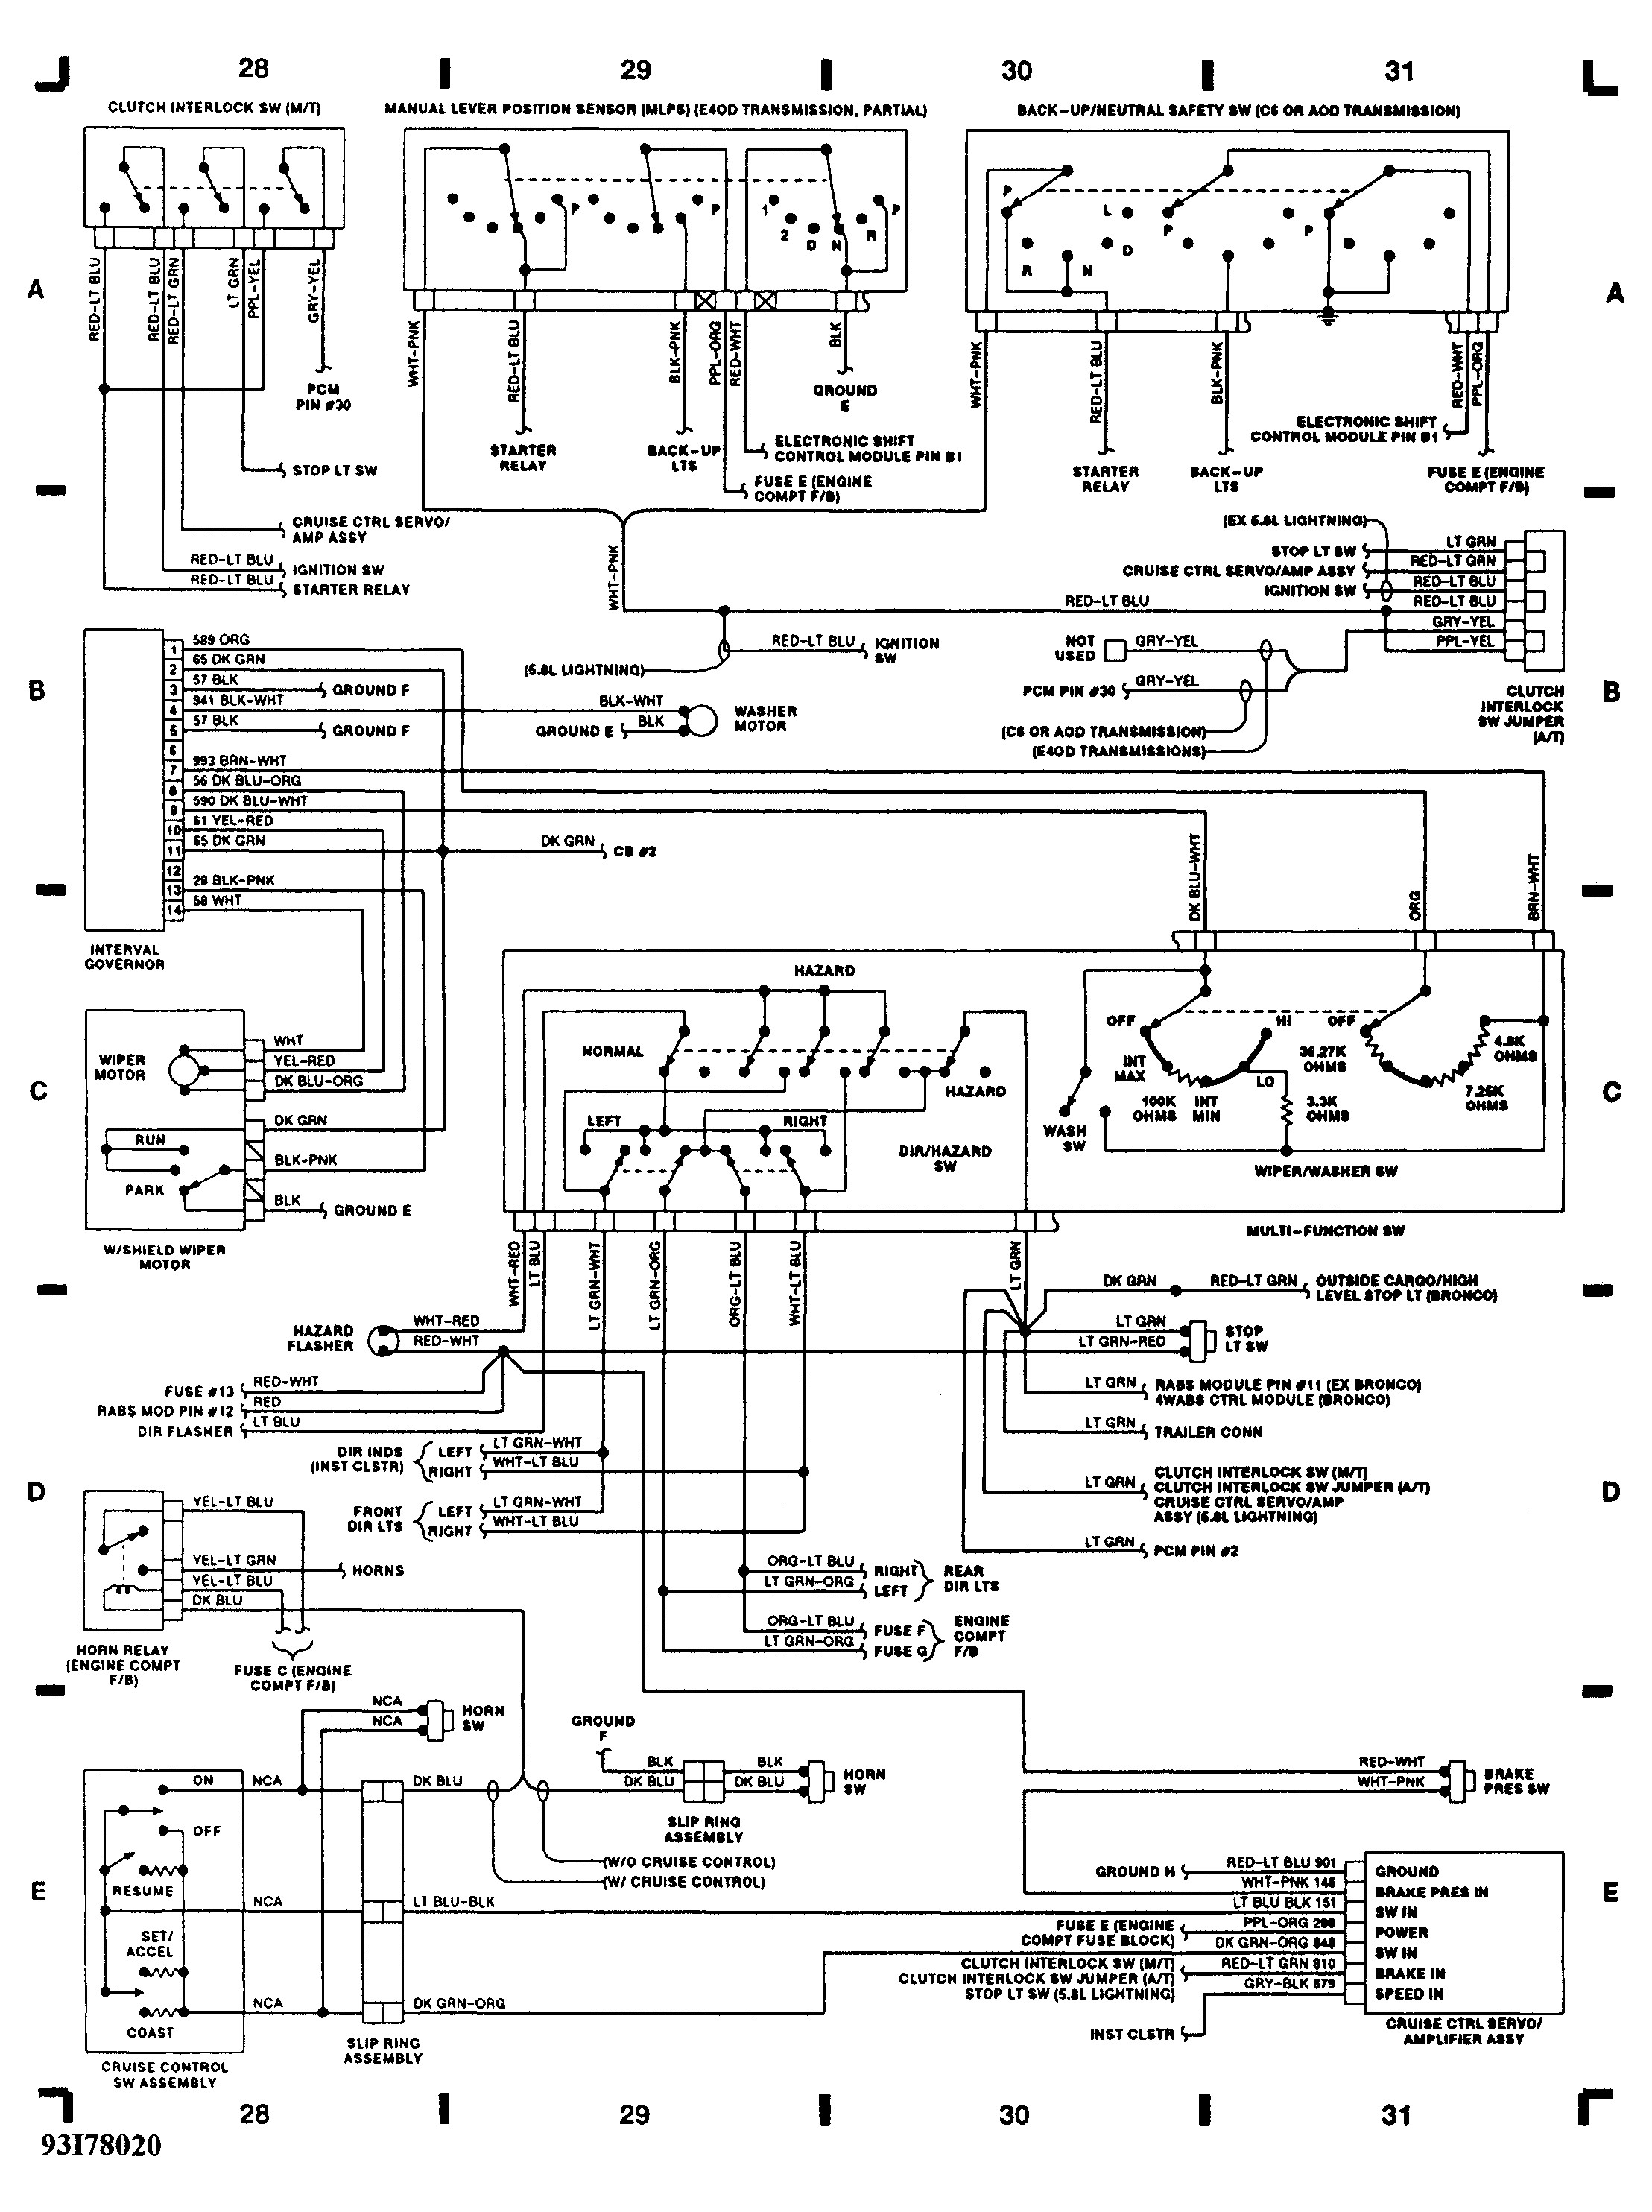 hight resolution of ford 6 0 powerstroke ficm wiring extended wiring diagram 2005 duramax ficm wiring harness ficm wiring harness